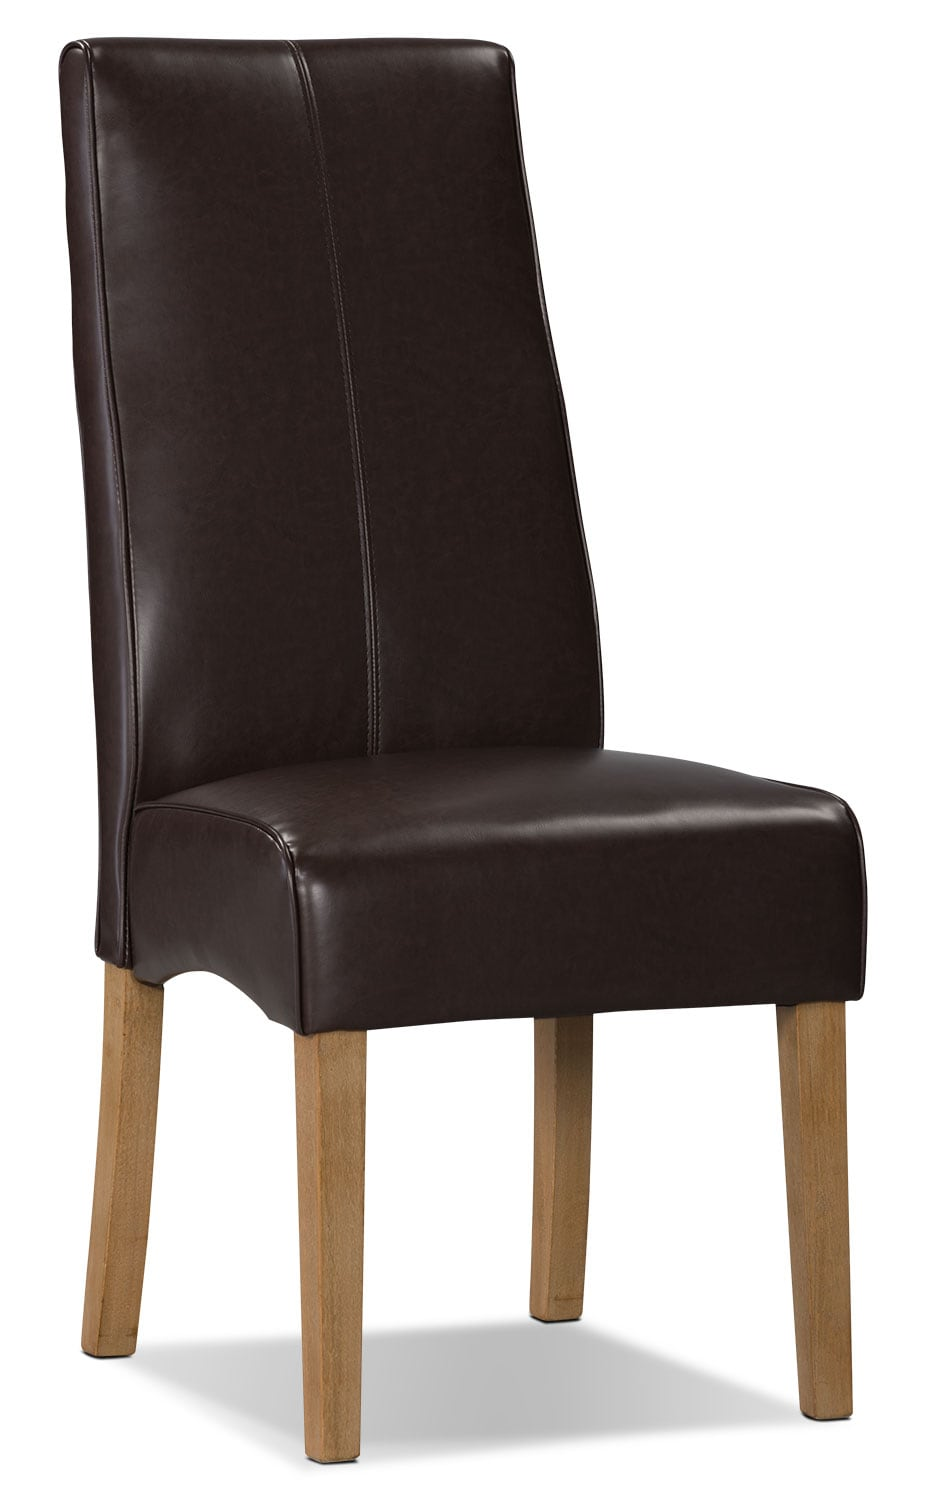 Colby Dining Chair – Brown